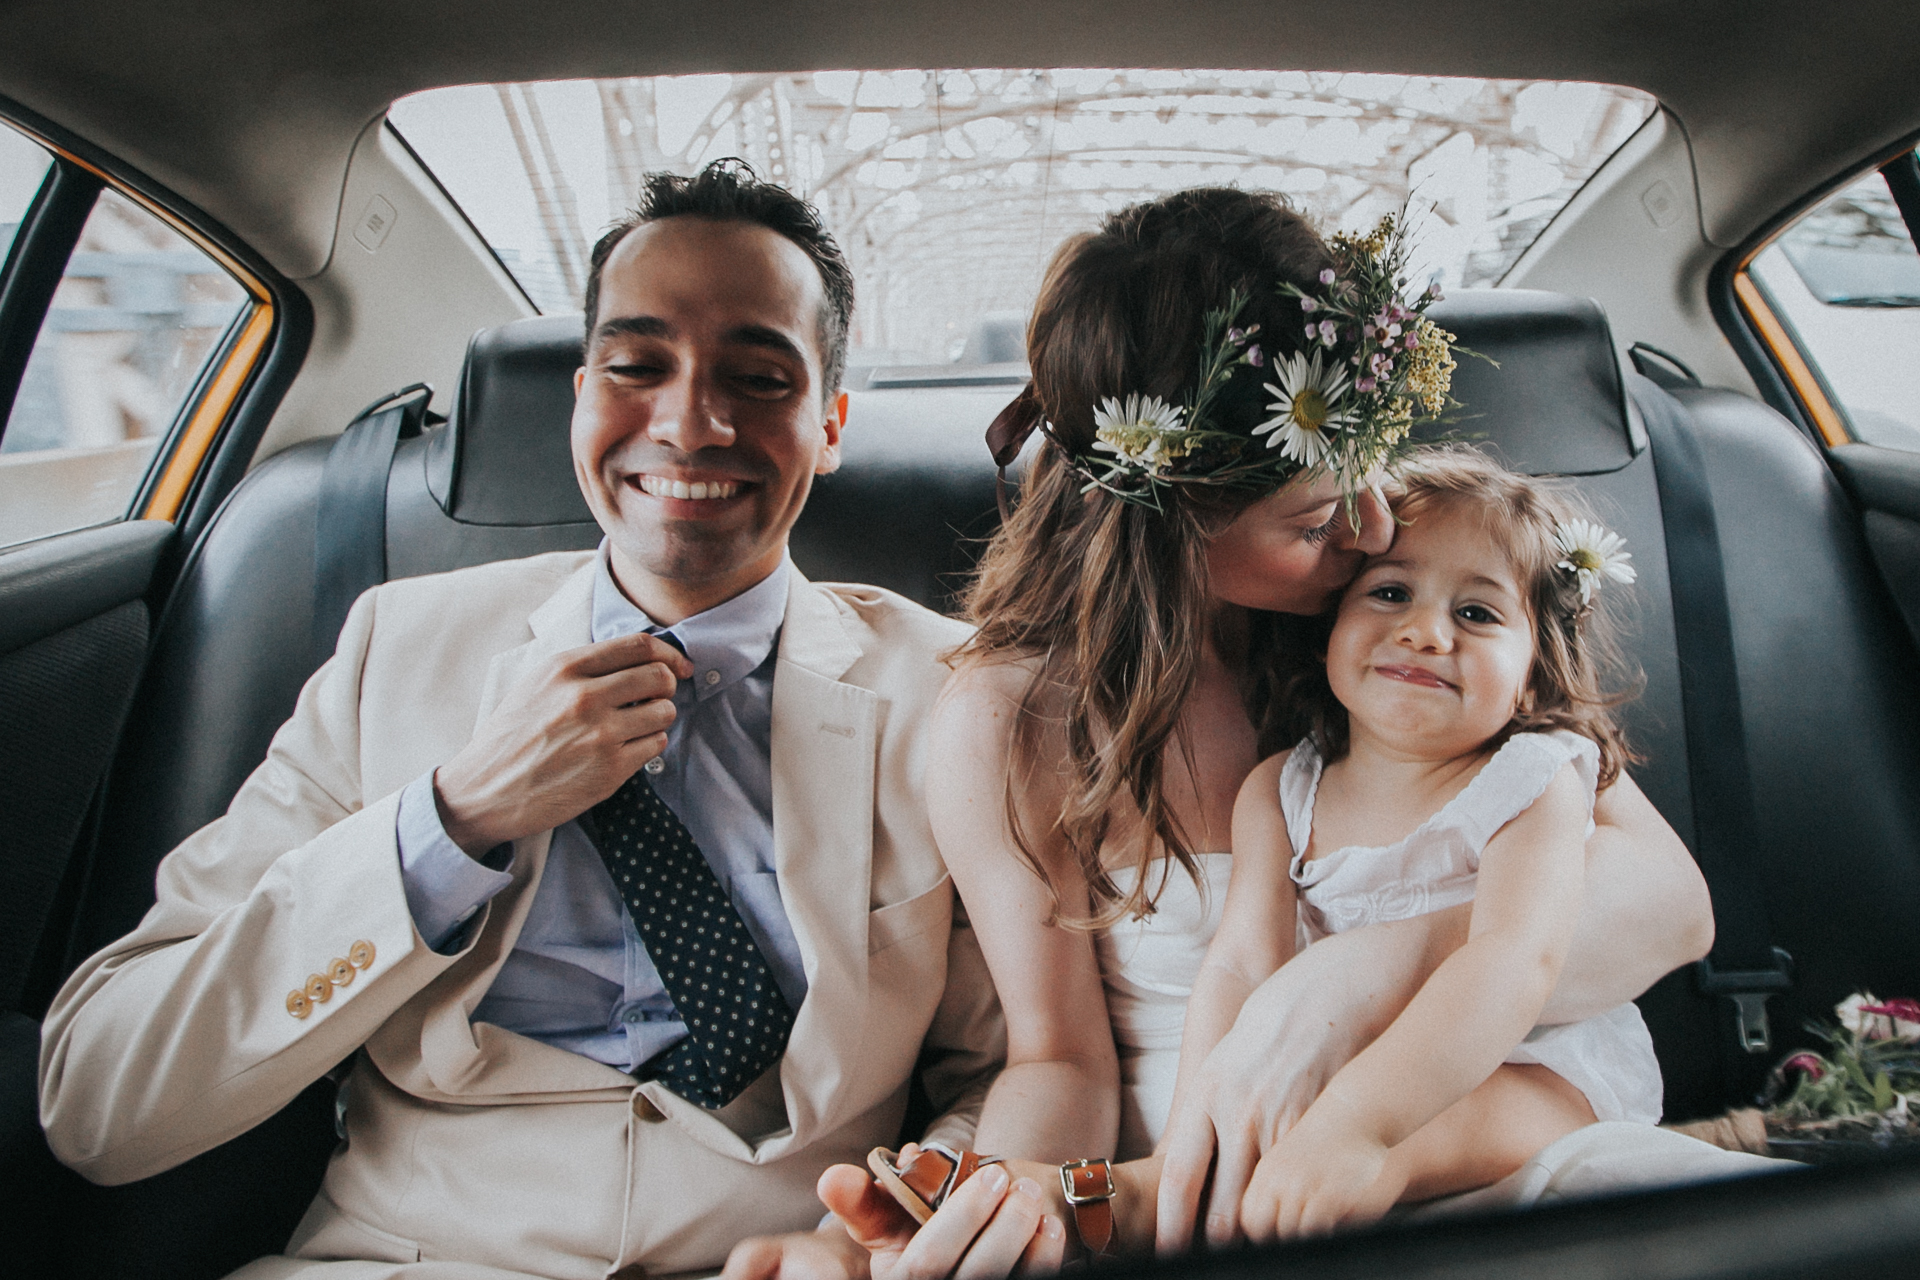 The bride and groom with their daughter, on the way to their ceremony via taxi